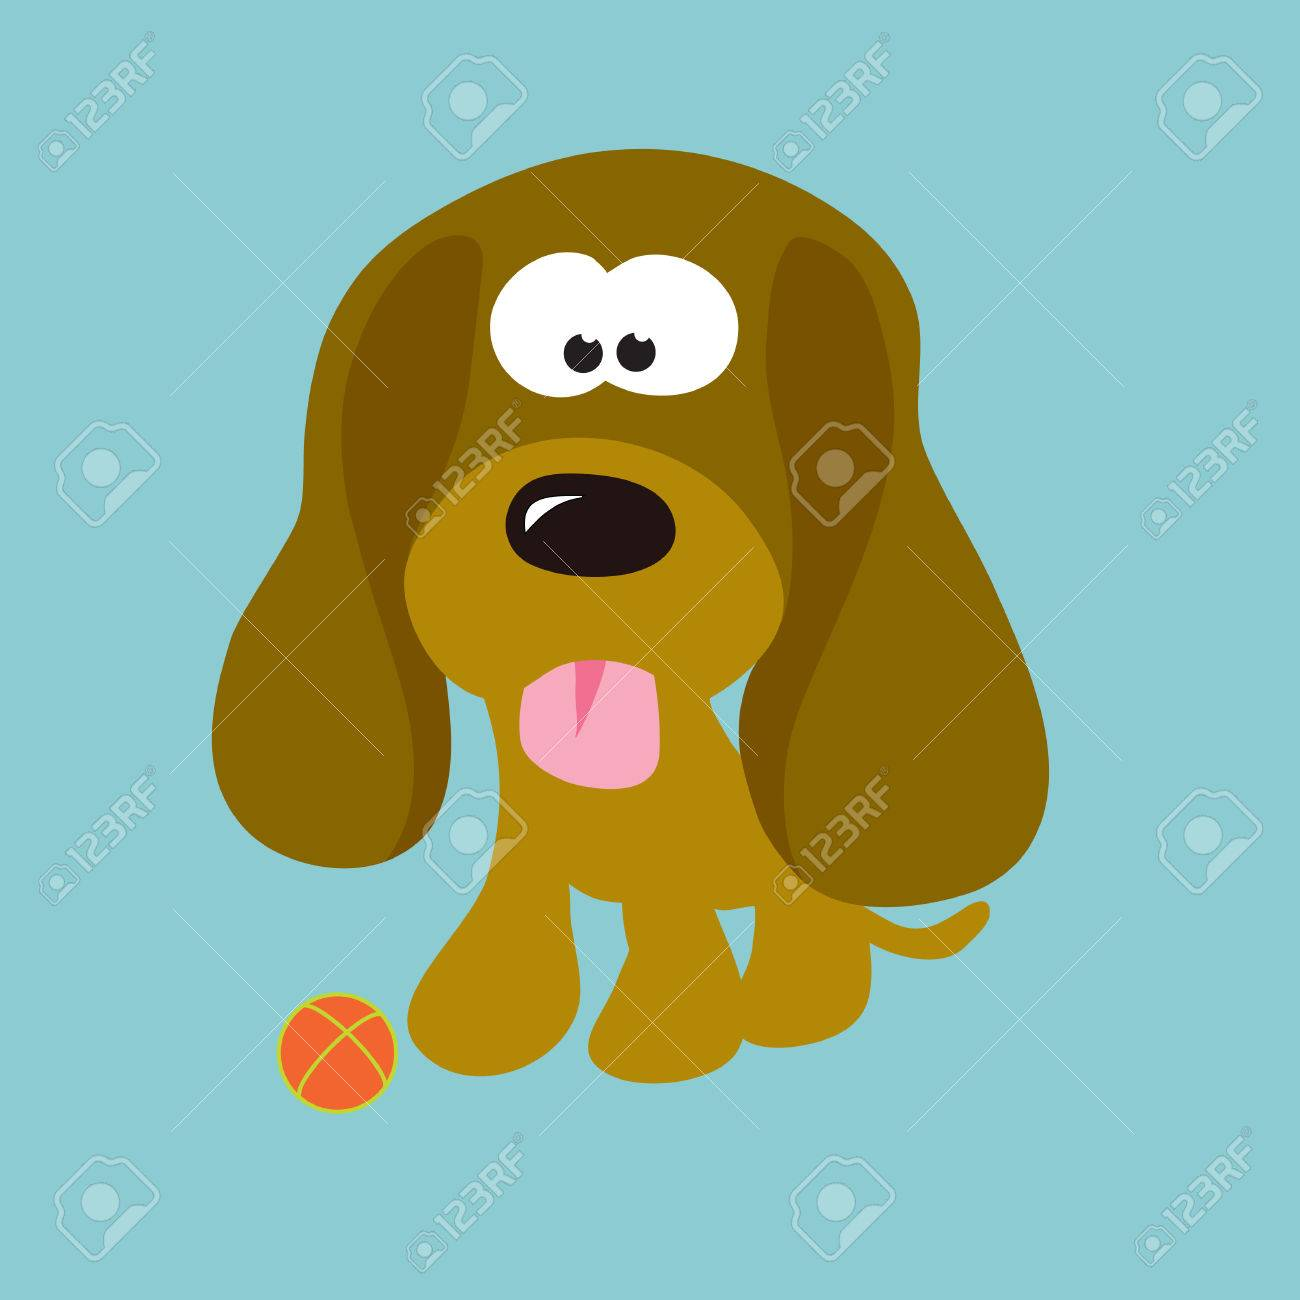 Droopy Ears Puppy Stock Vector - 5529361